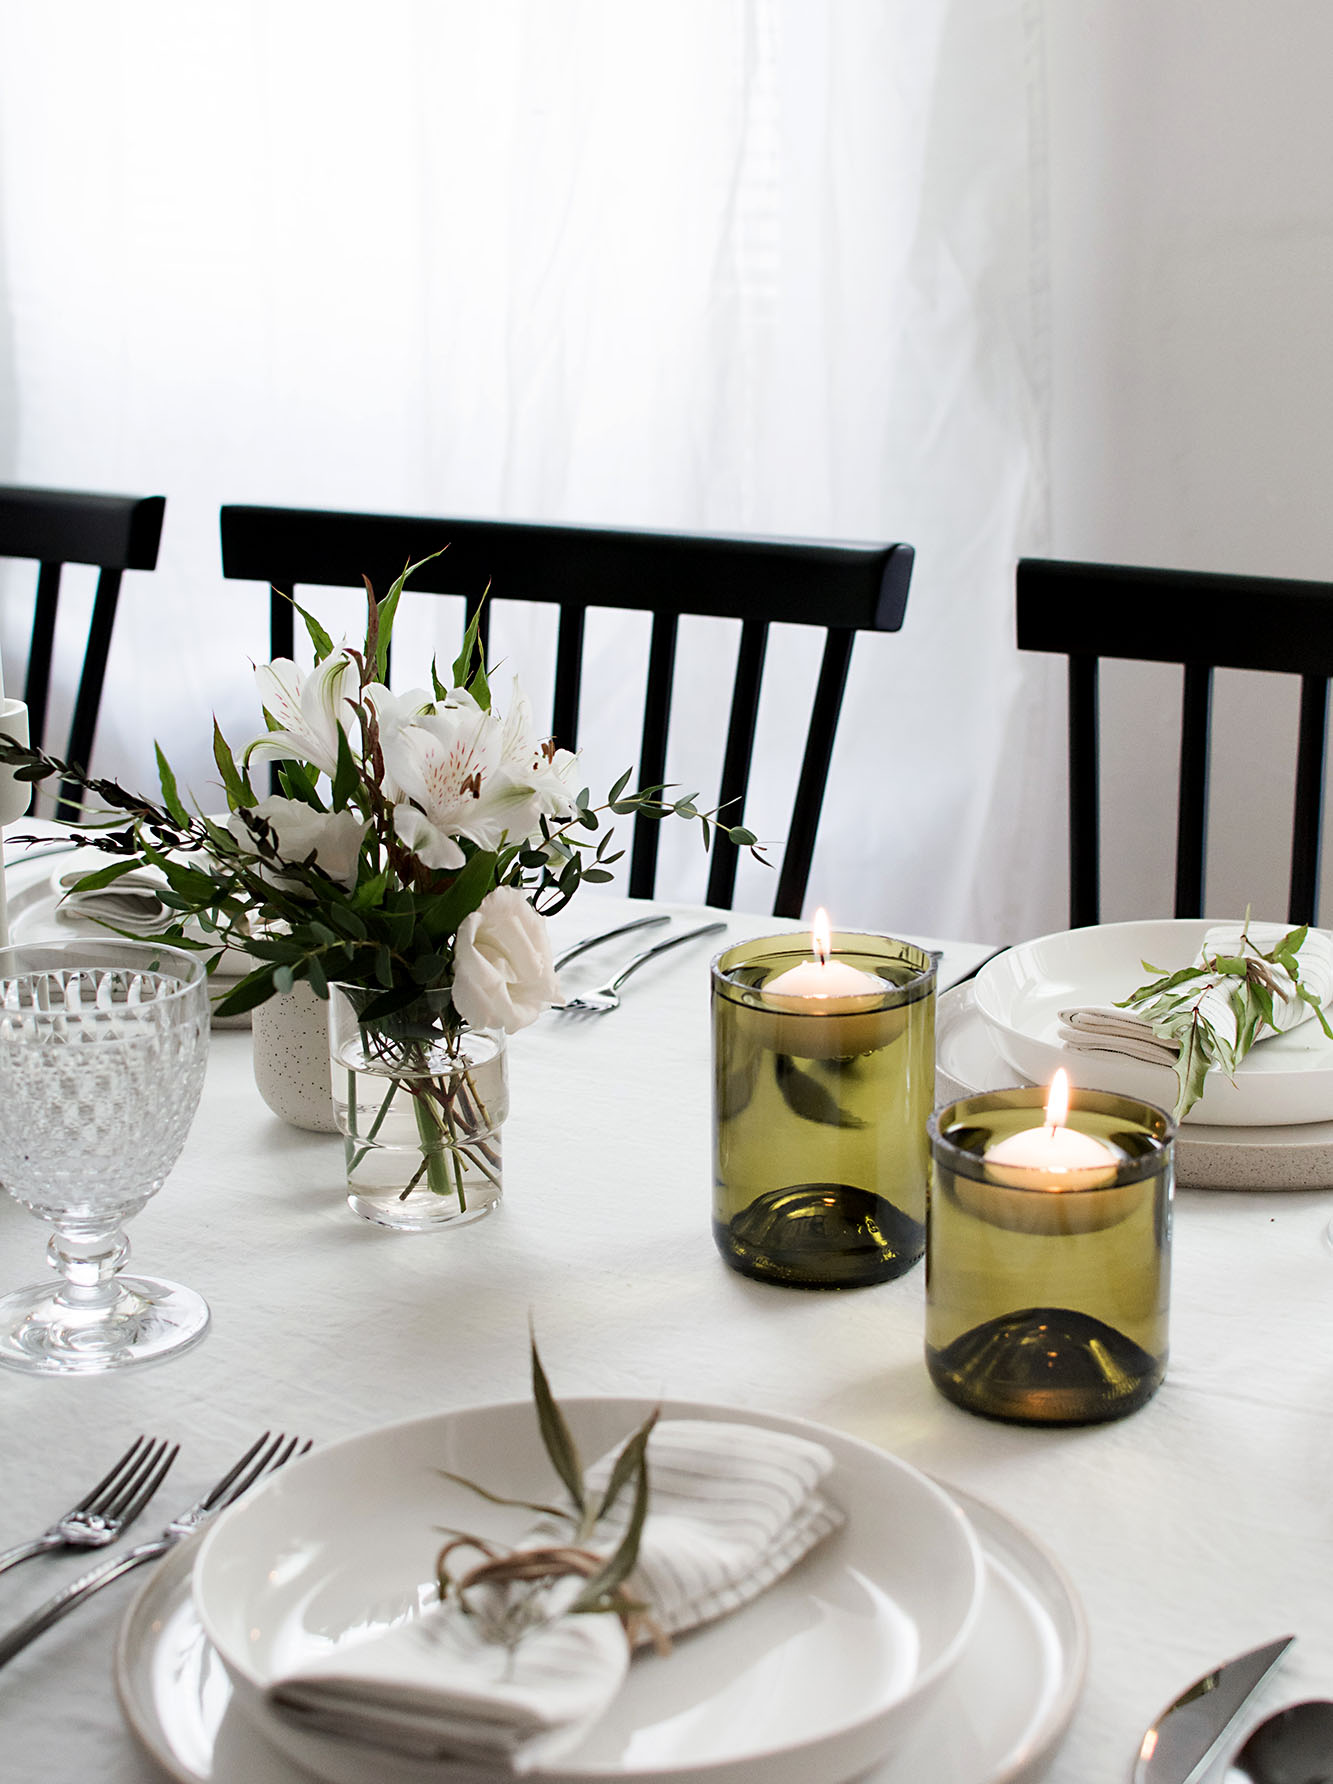 Floating candle holders using cut glass bottles